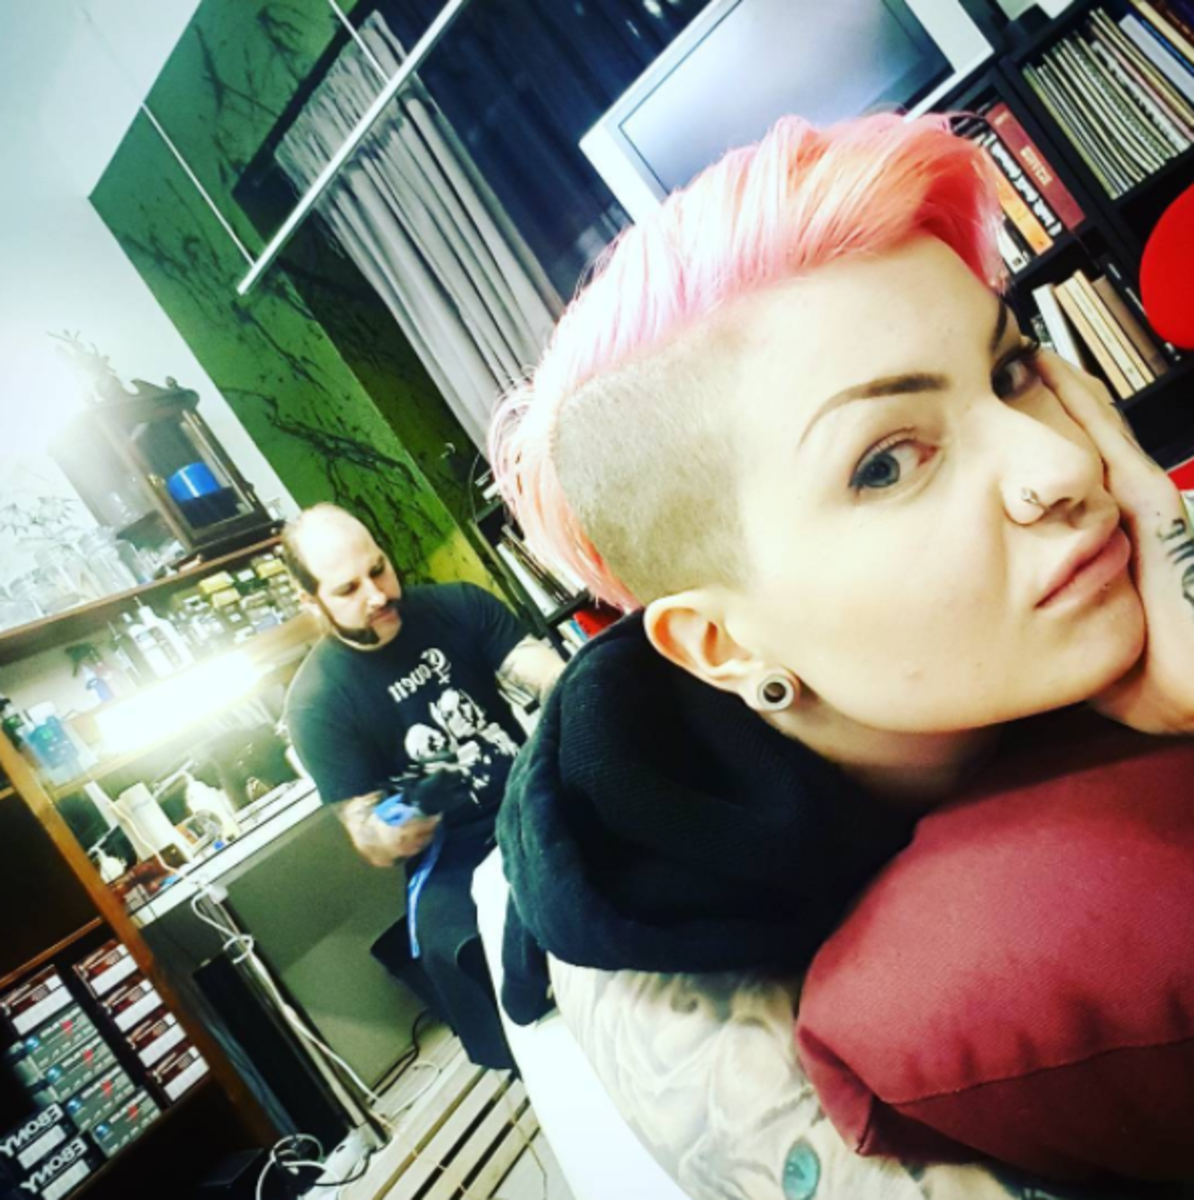 unhappy girl with pink hair getting tattooed